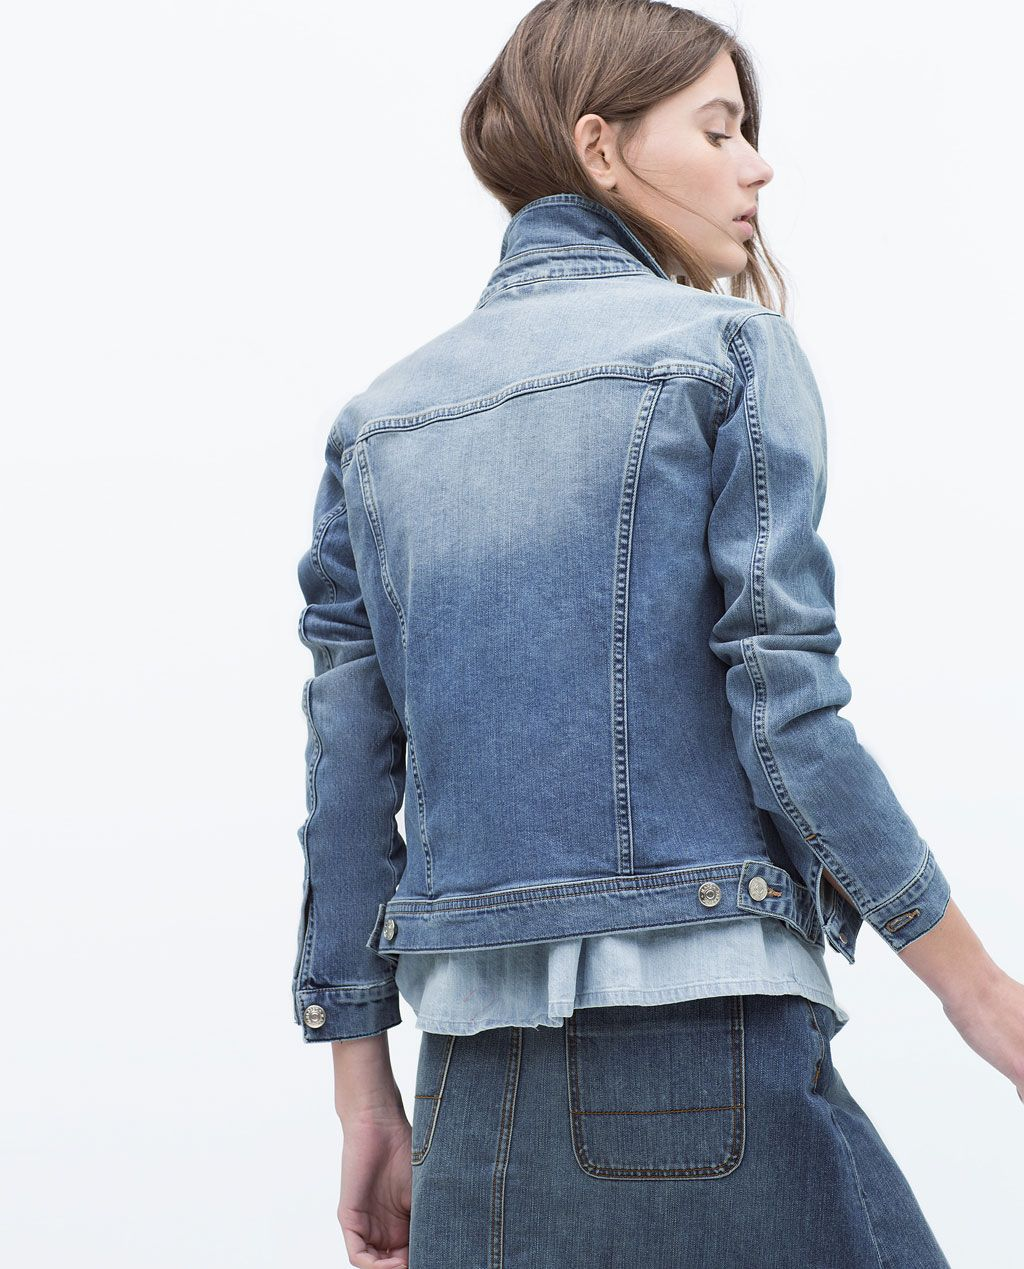 Pin By Ash Maro On Allegro Fashion Outfits Jackets